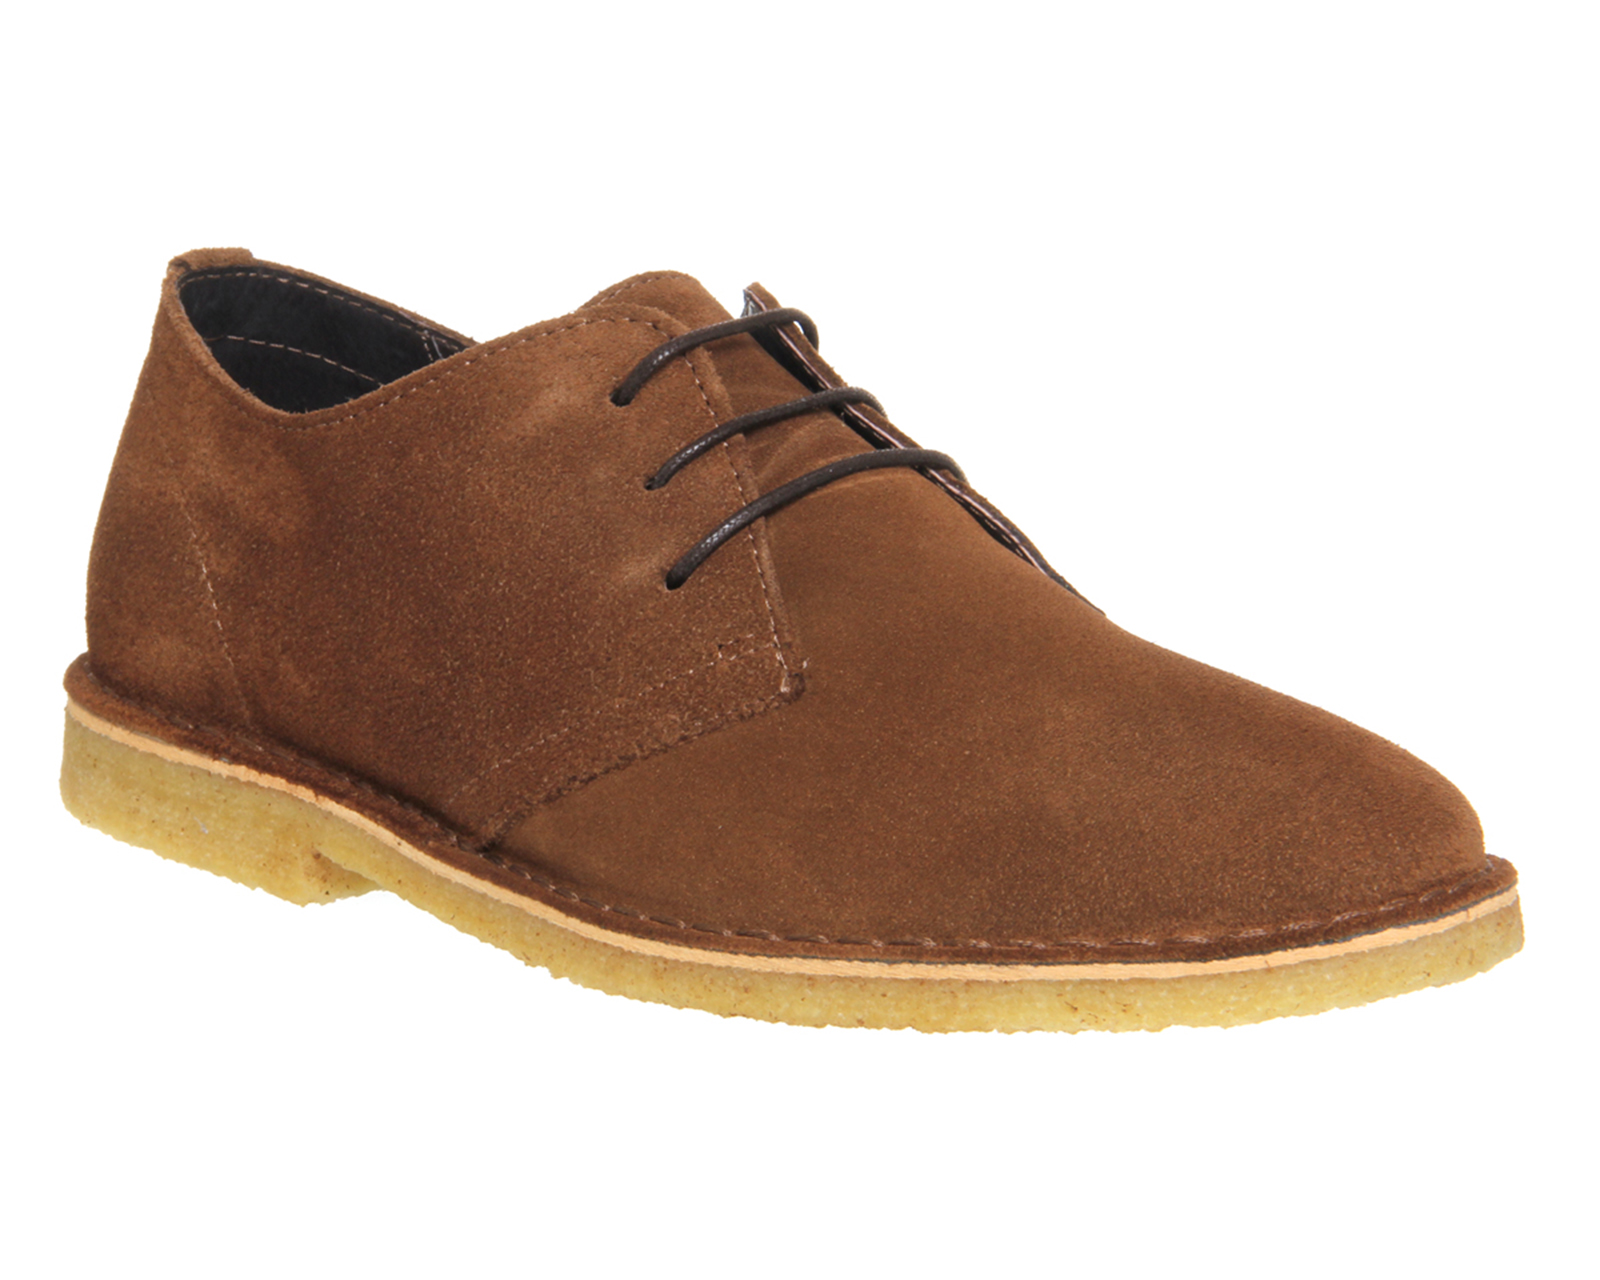 Mens Ask the Missus Arizona Desert Shoes COLA SUEDE Casual ...